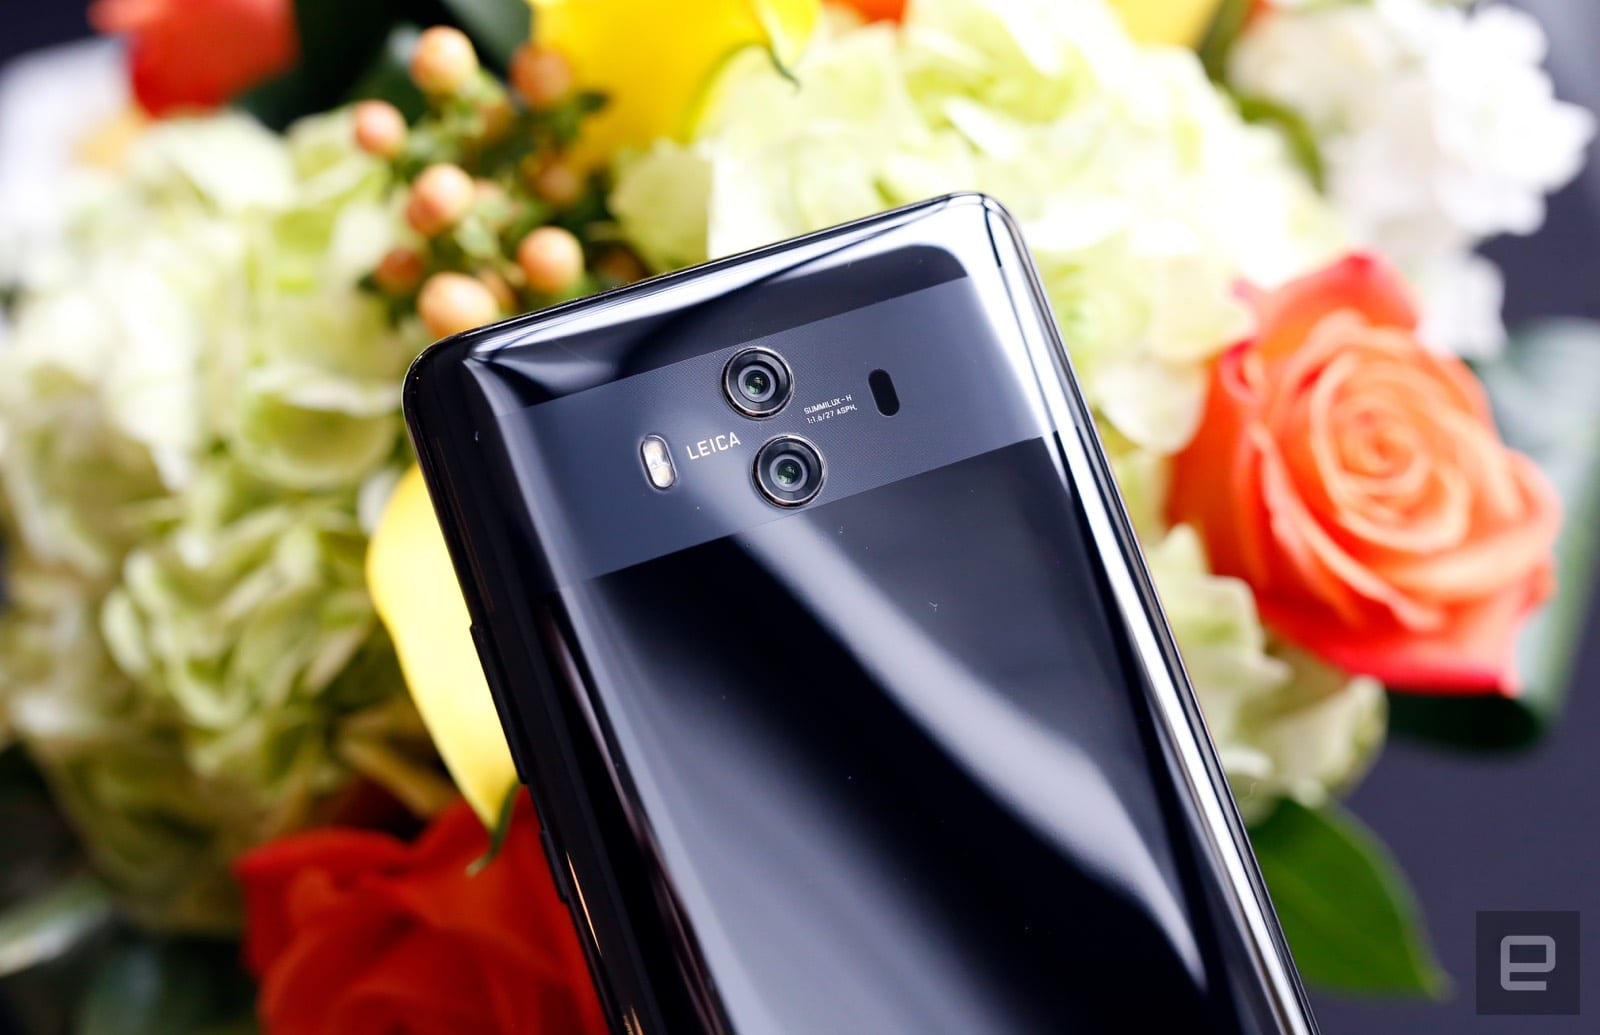 Huawei Mate 10 hands-on: Faster, more helpful AI